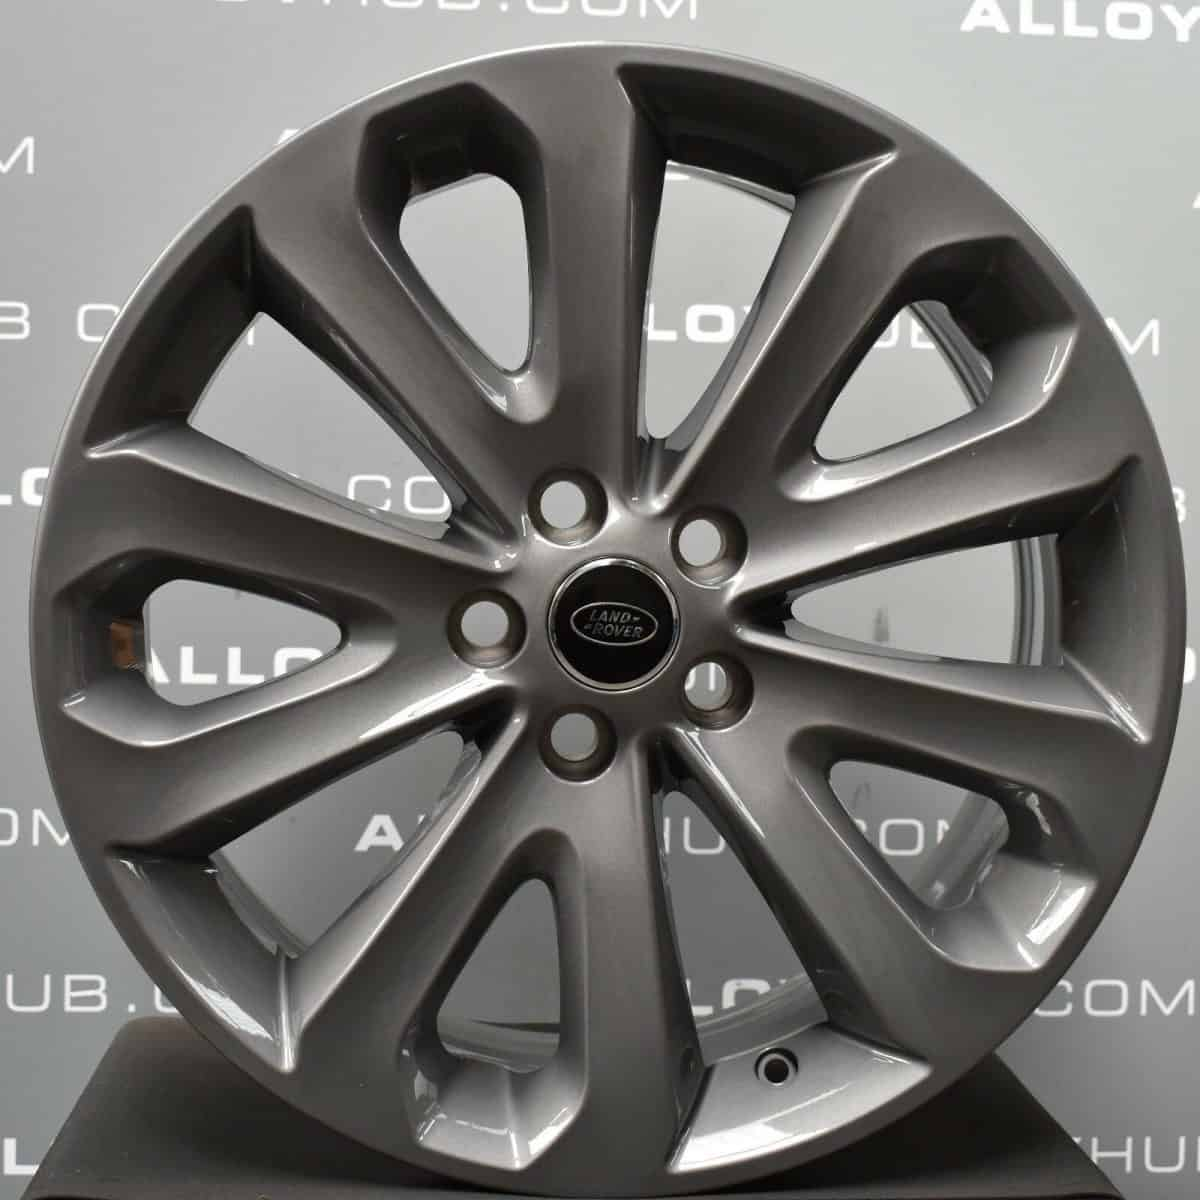 """Genuine Land Rover Range Rover Style 5002 20"""" inch 5 Split Spoke Alloy Wheels with Anthracite Grey Finish LR037745"""